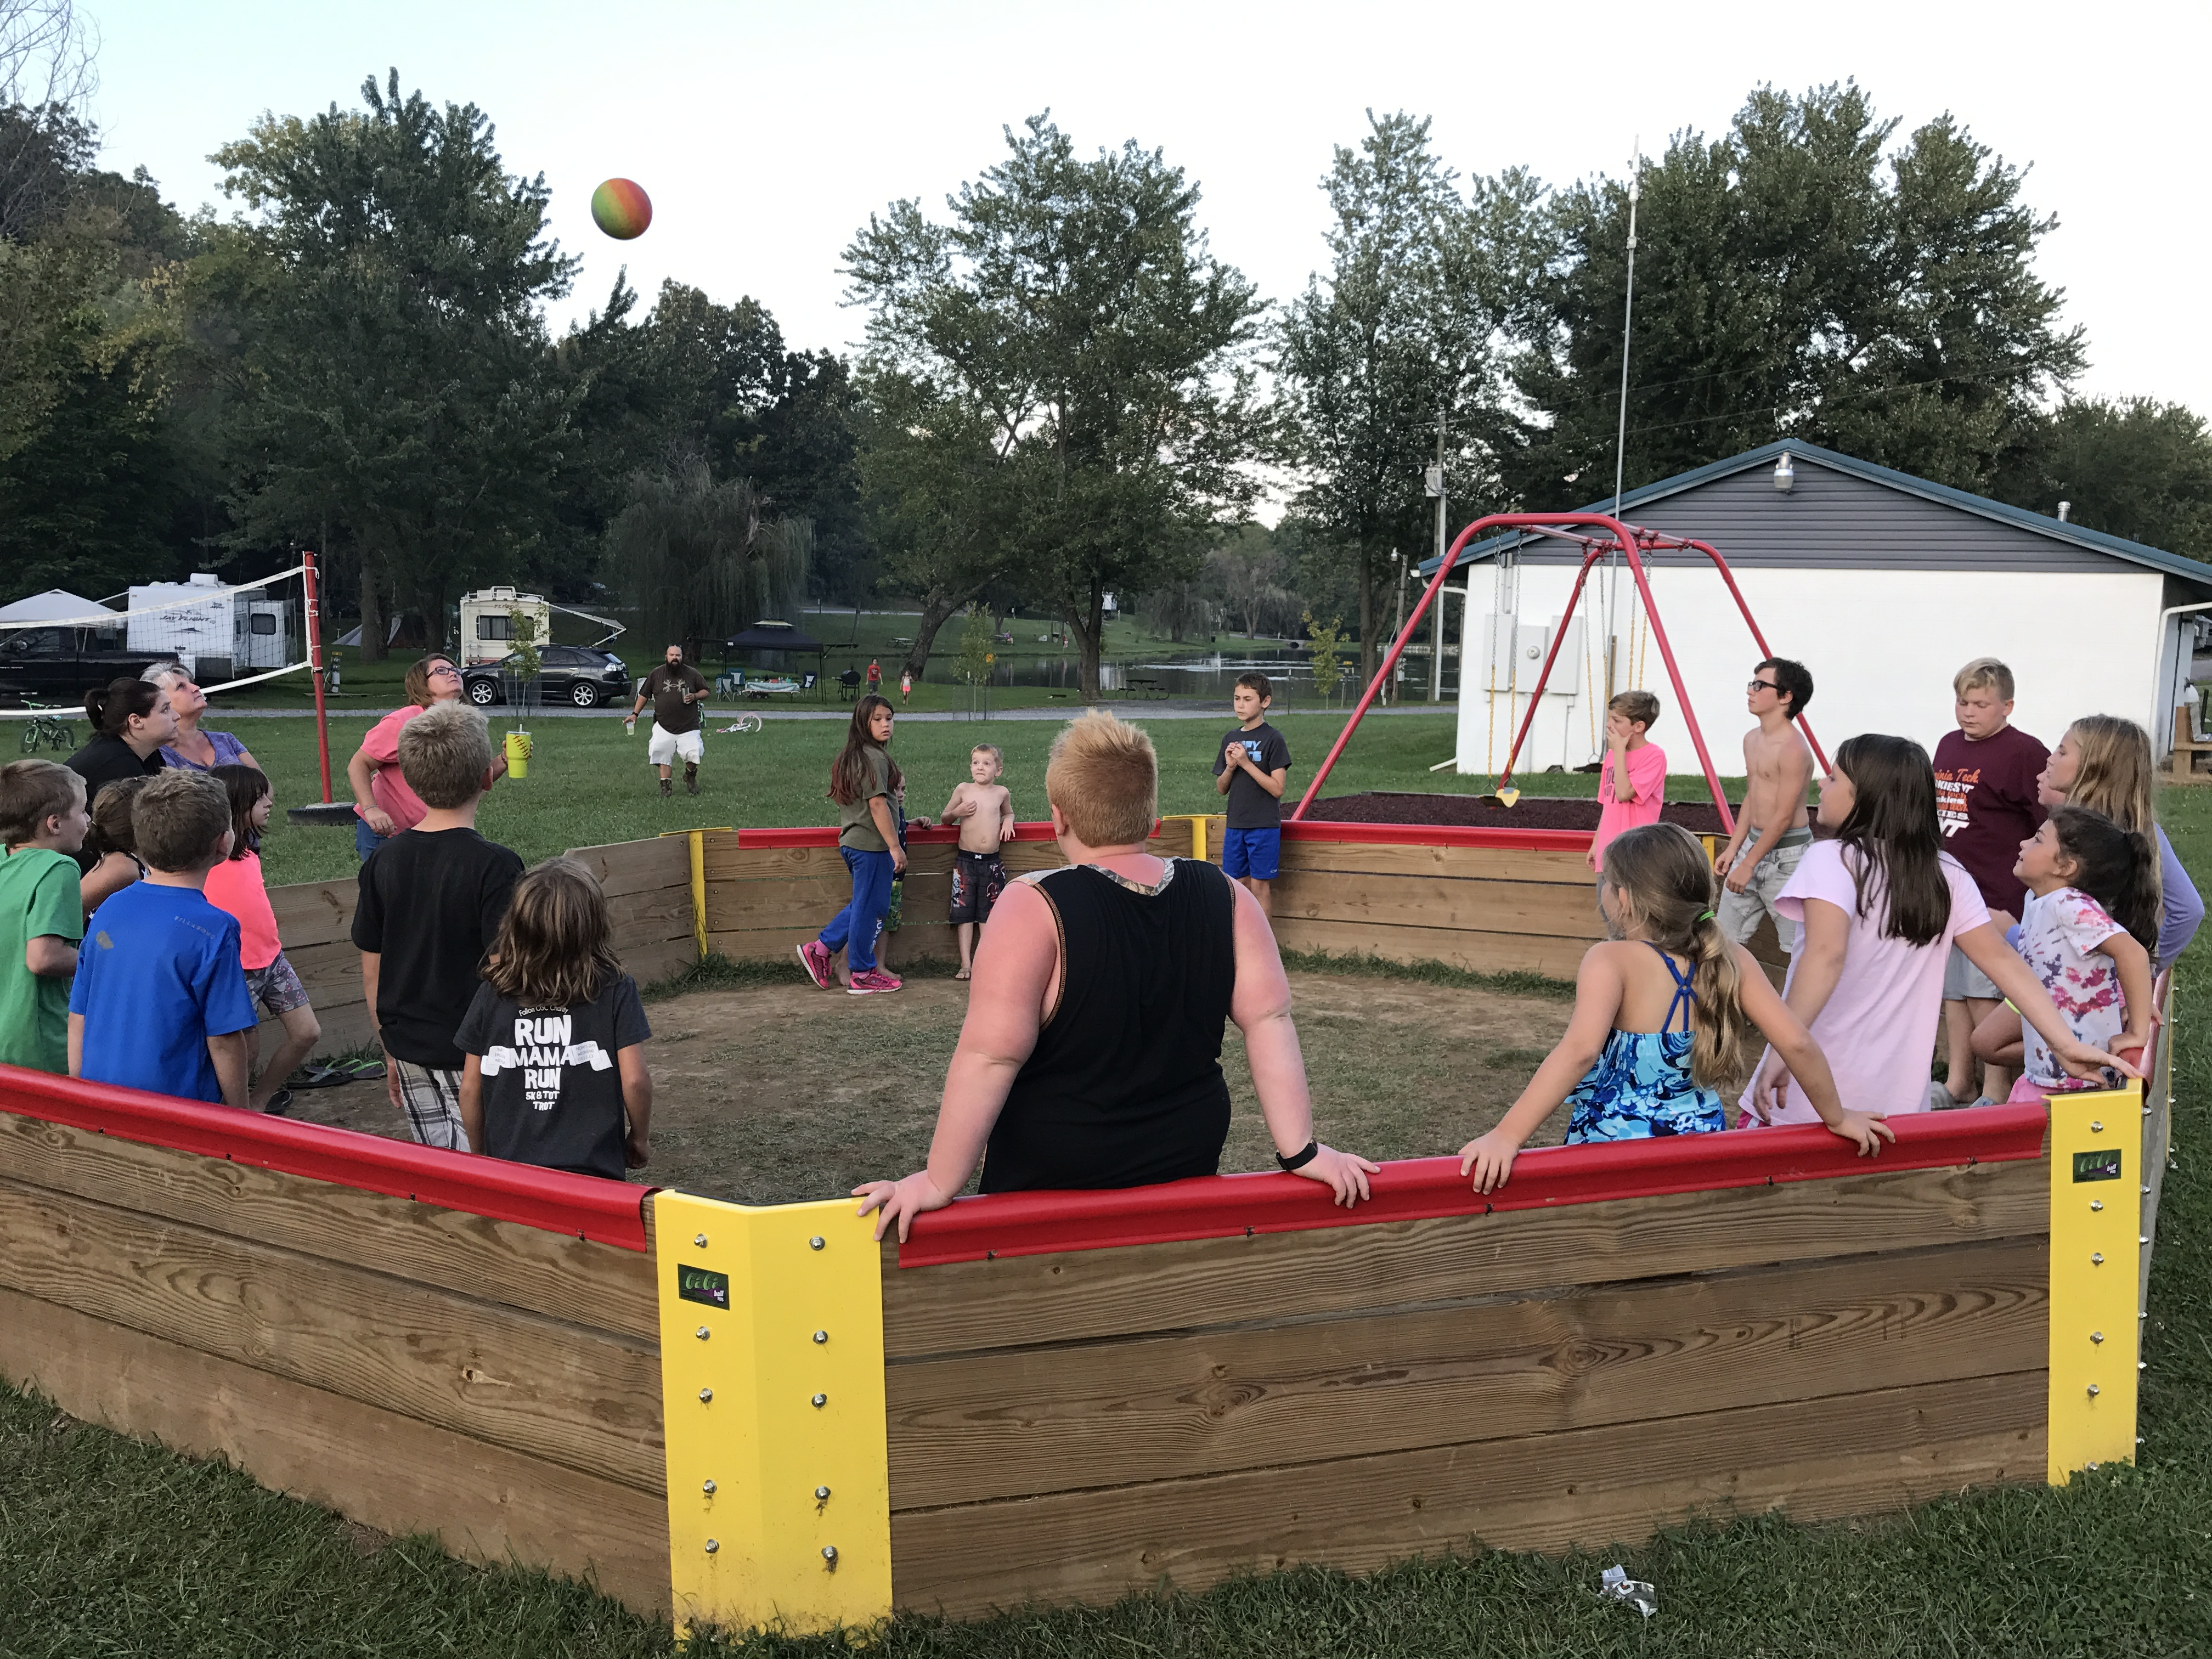 The gaga pit sees a lot of action!